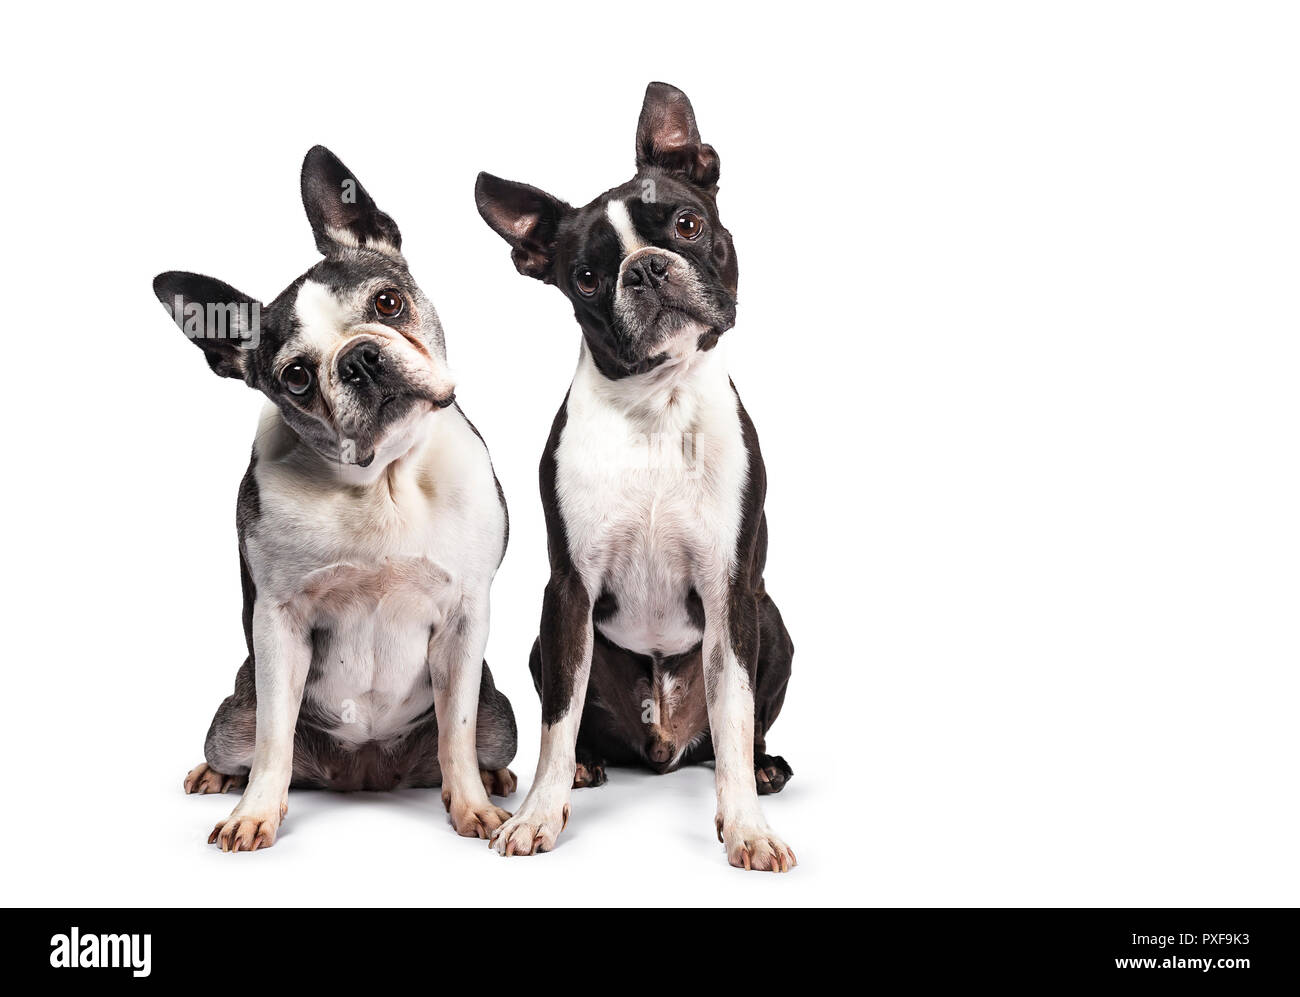 Funny duo of two black and white Boston Terriers sitting beside eachother, looking to camera with tilted heads, isolated on white background - Stock Image